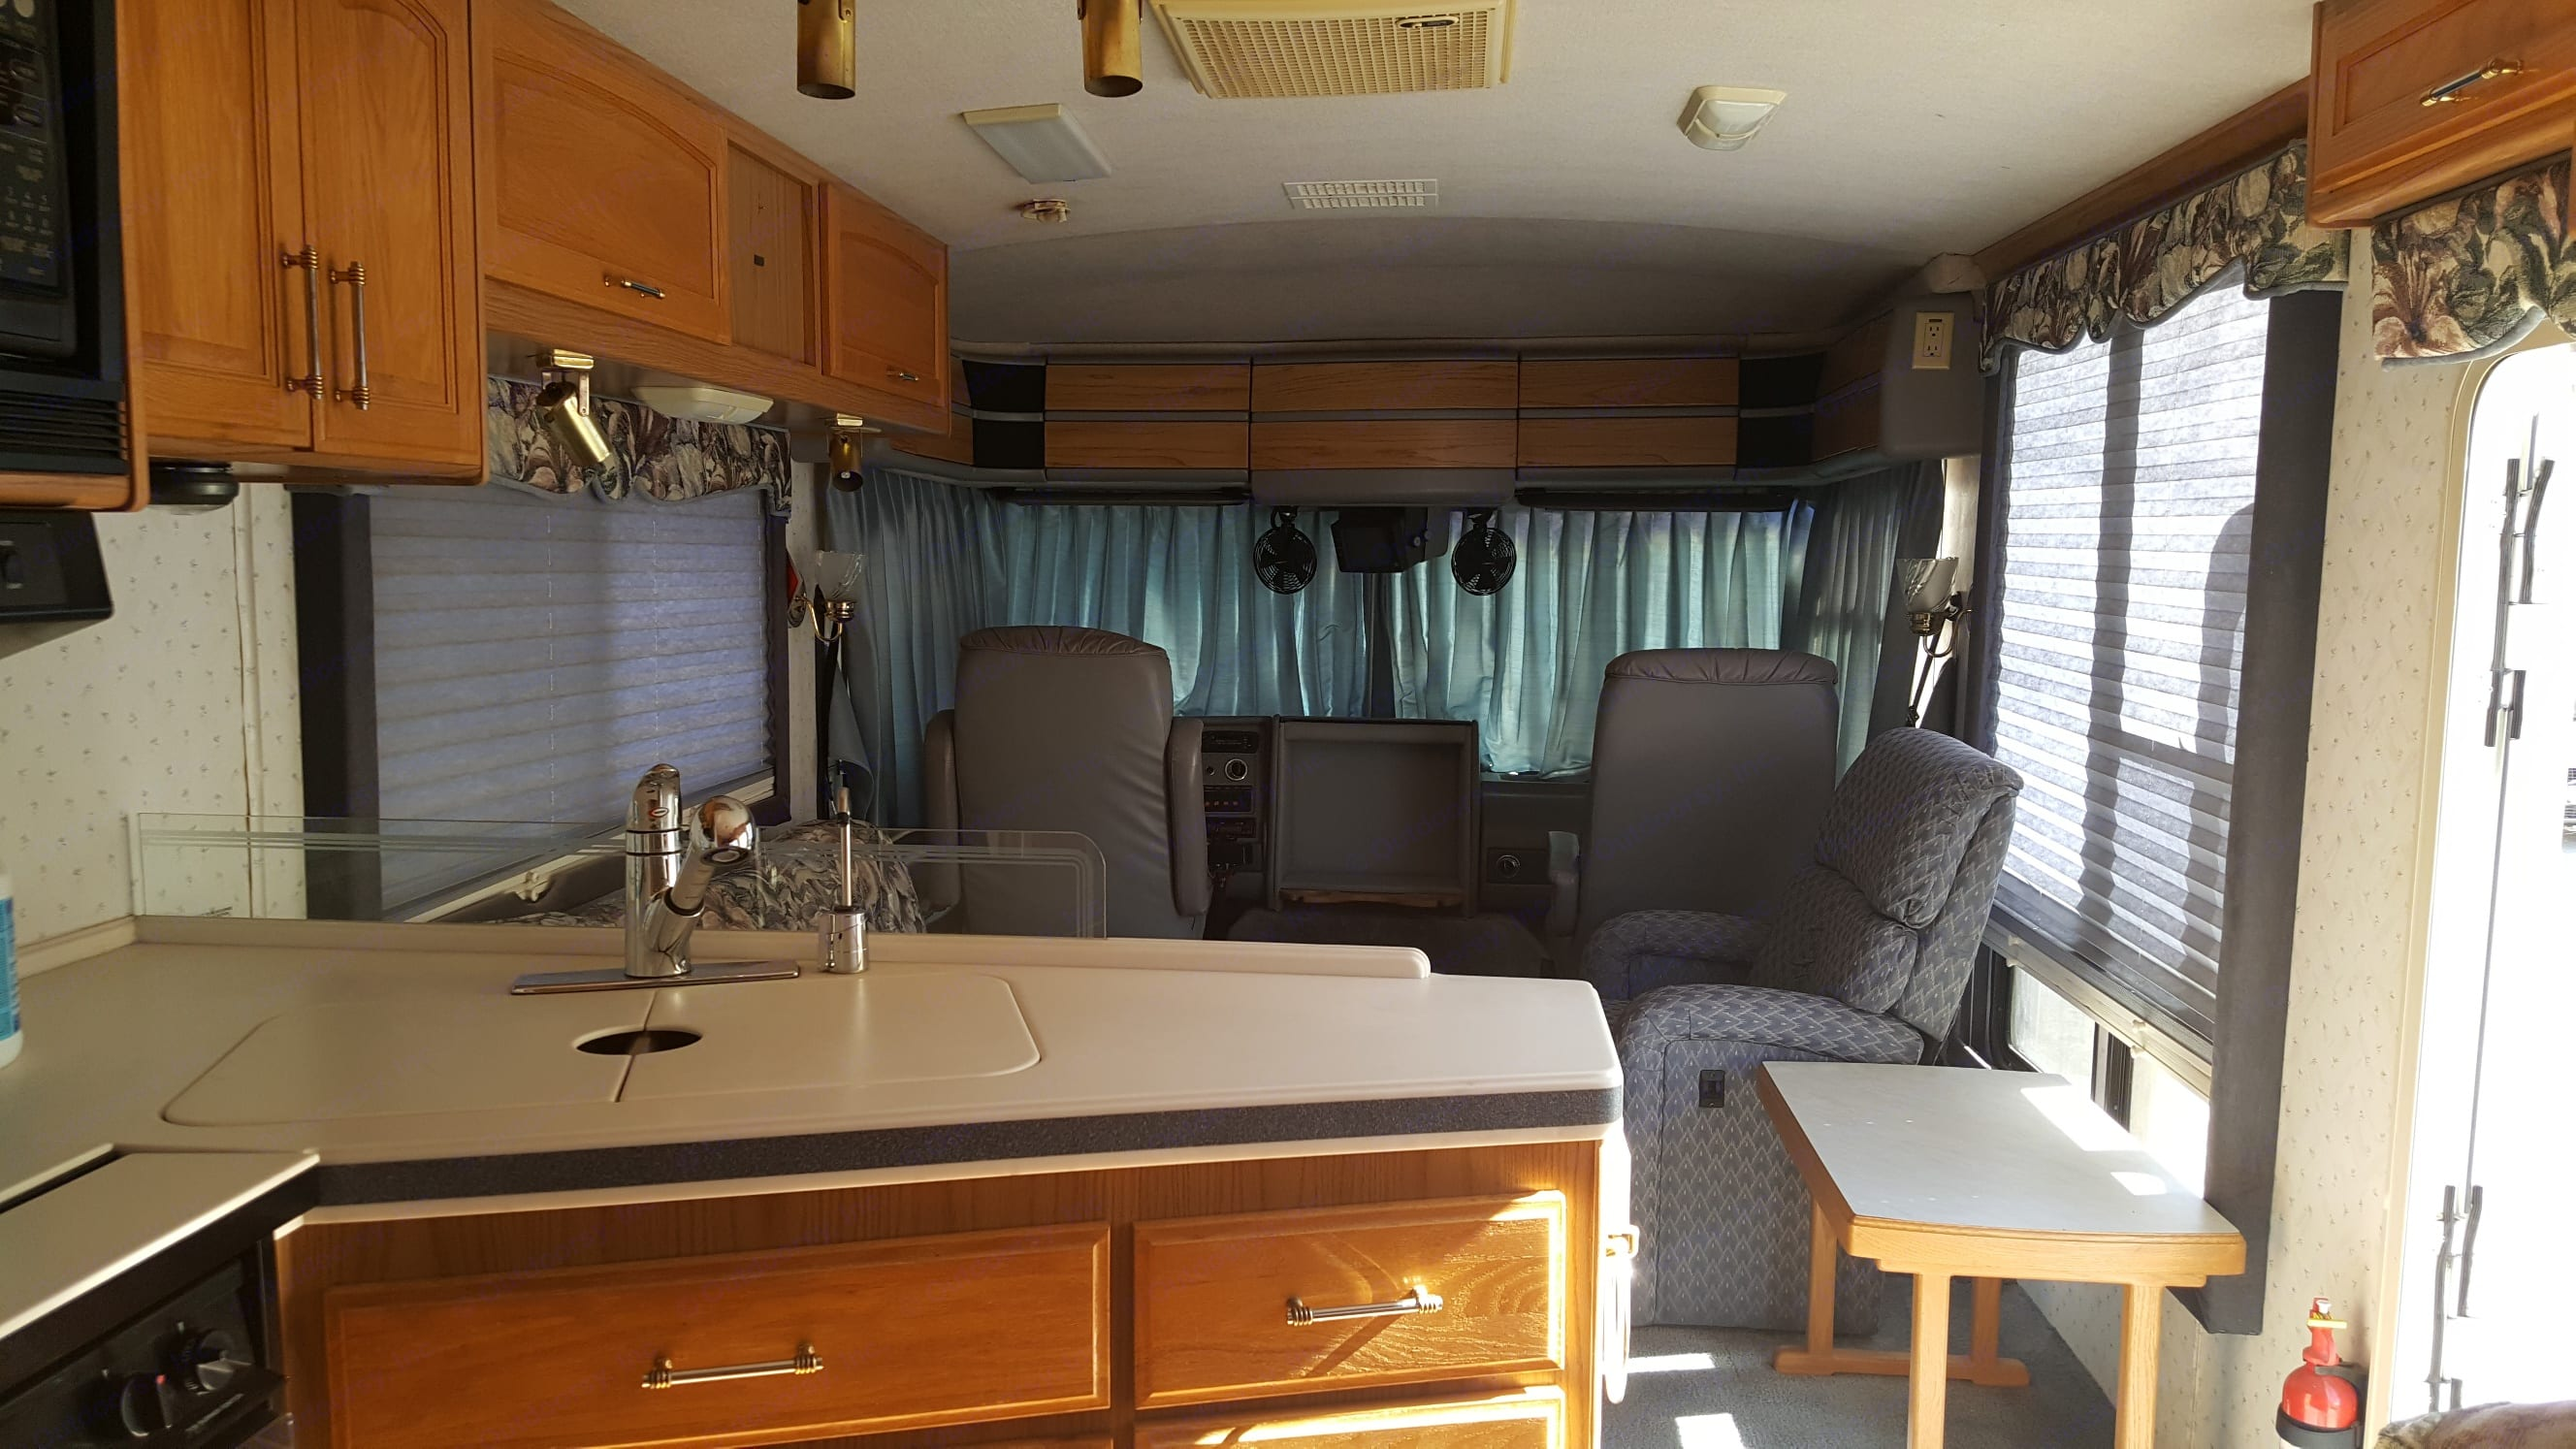 Curtains to the sun out and for privacy.. Fleetwood Pace Arrow 1996